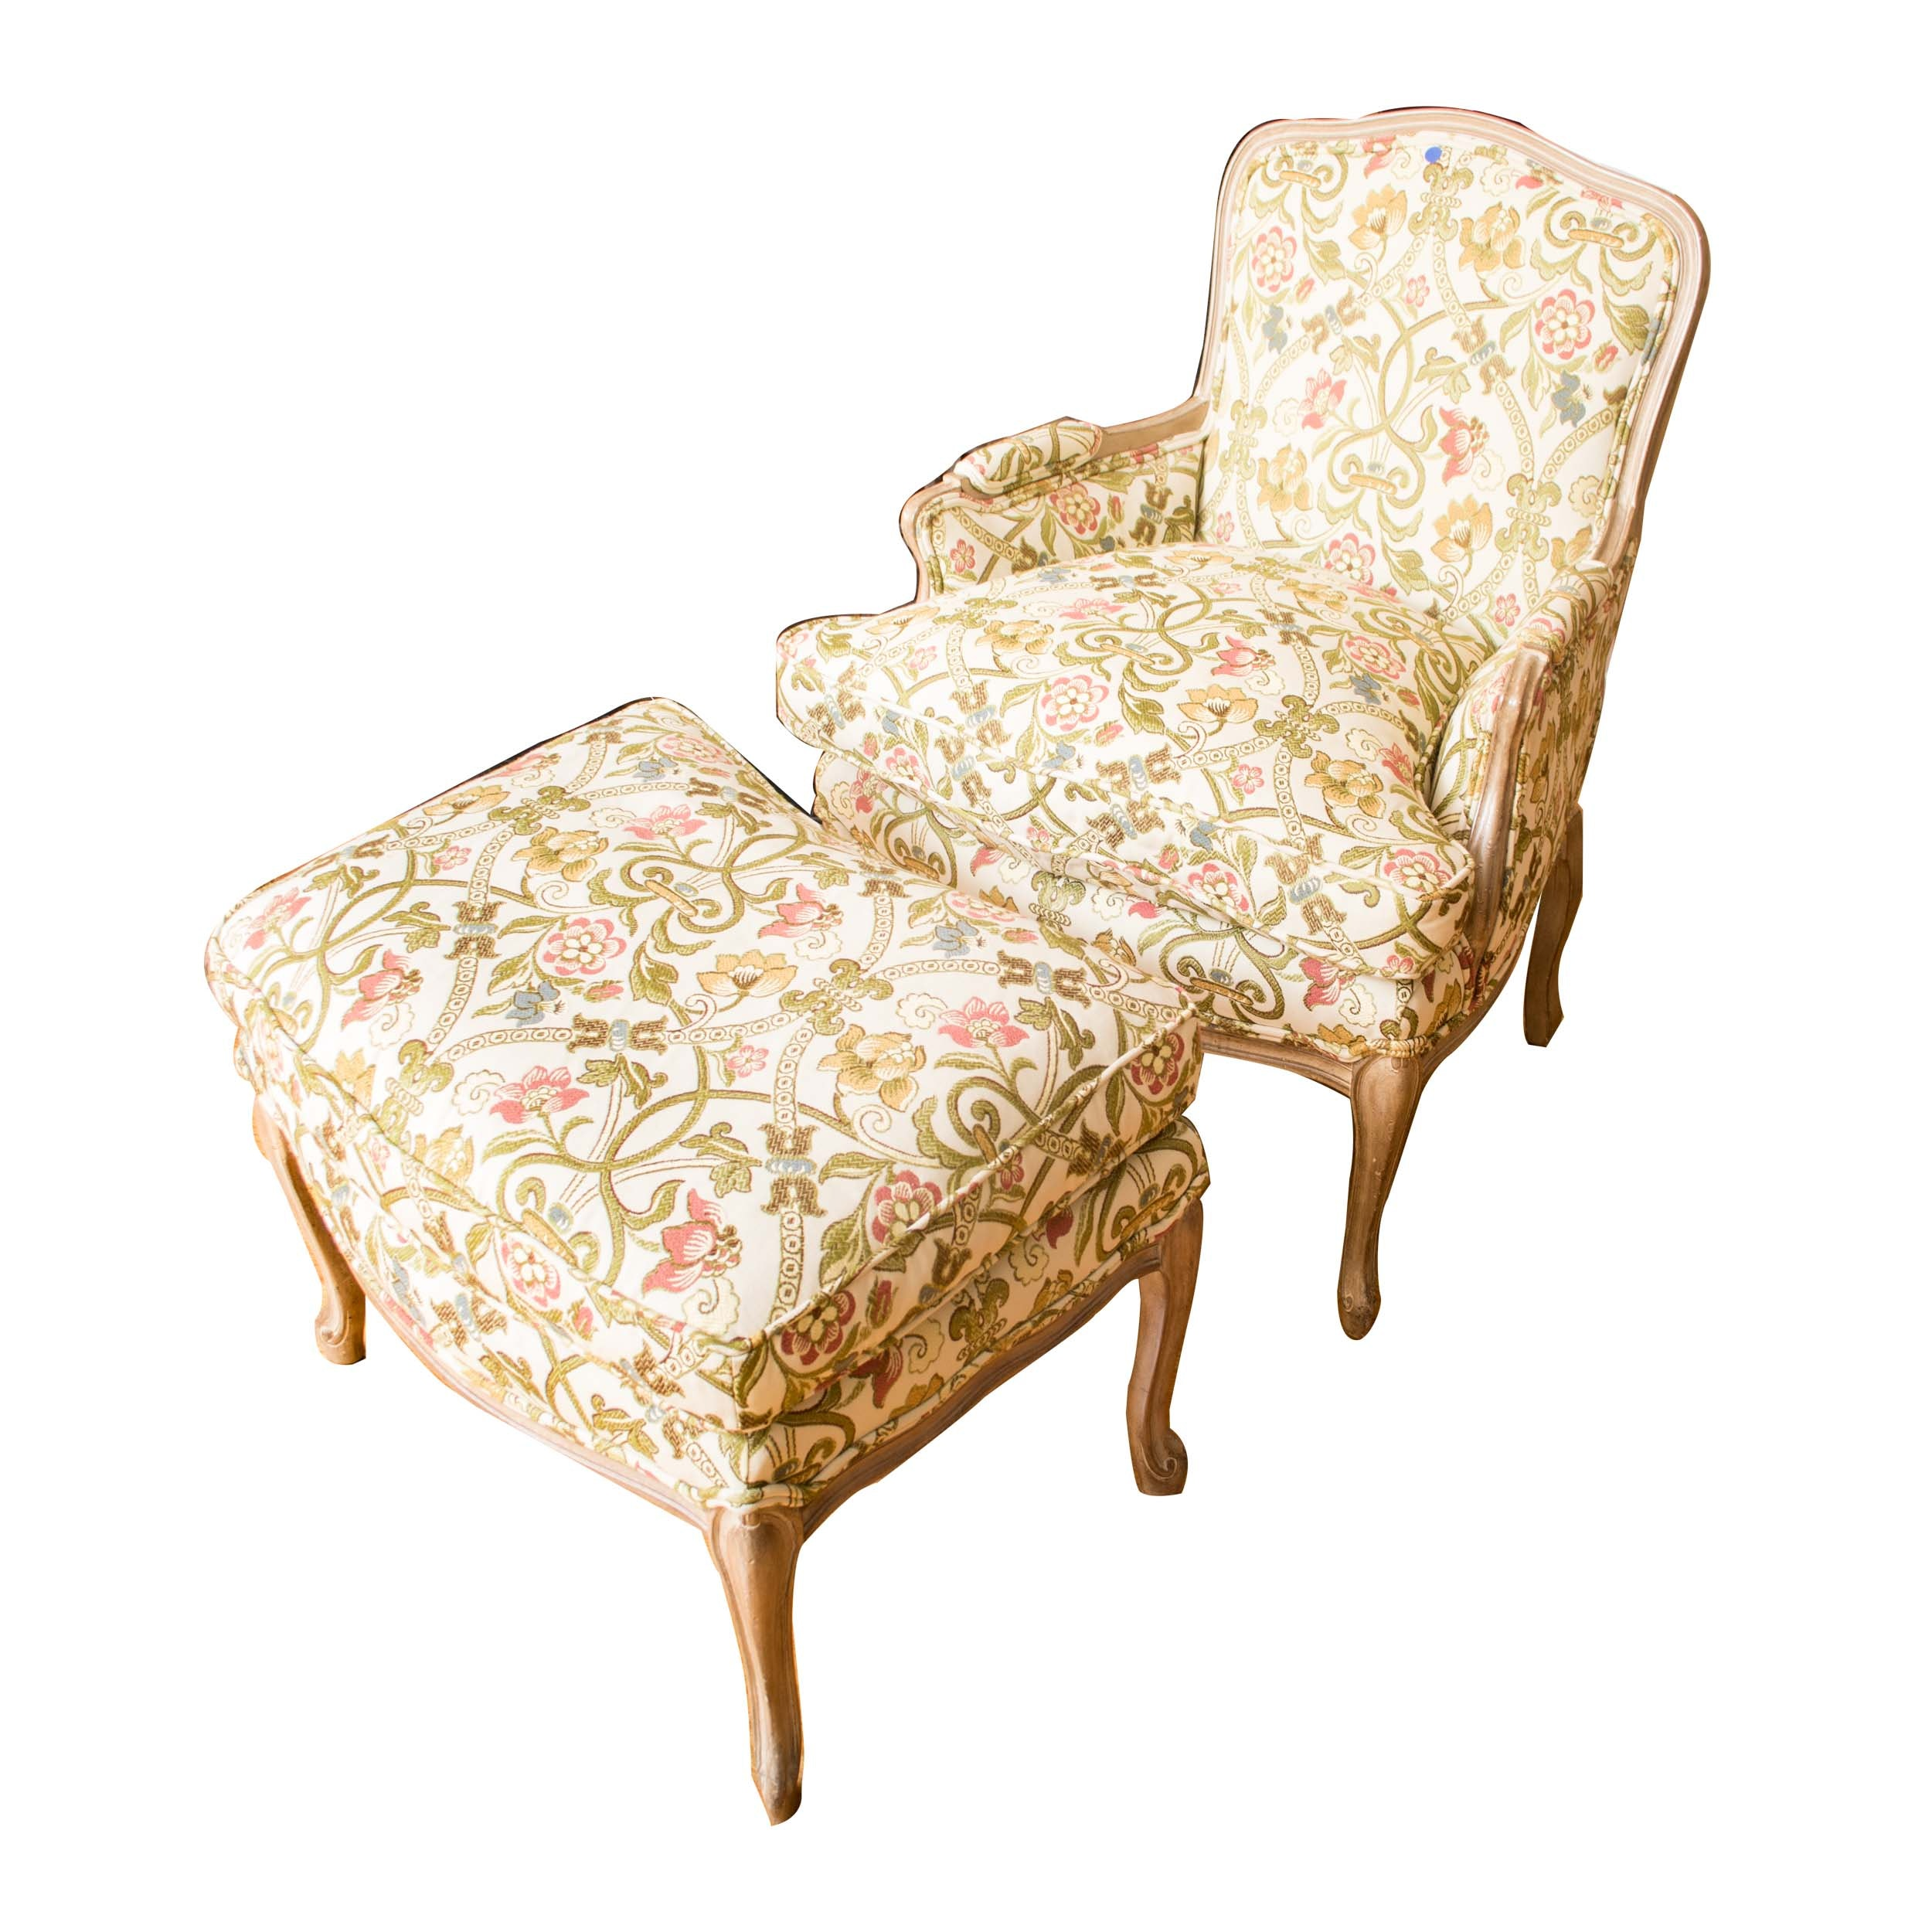 Bergère Chair and Ottoman